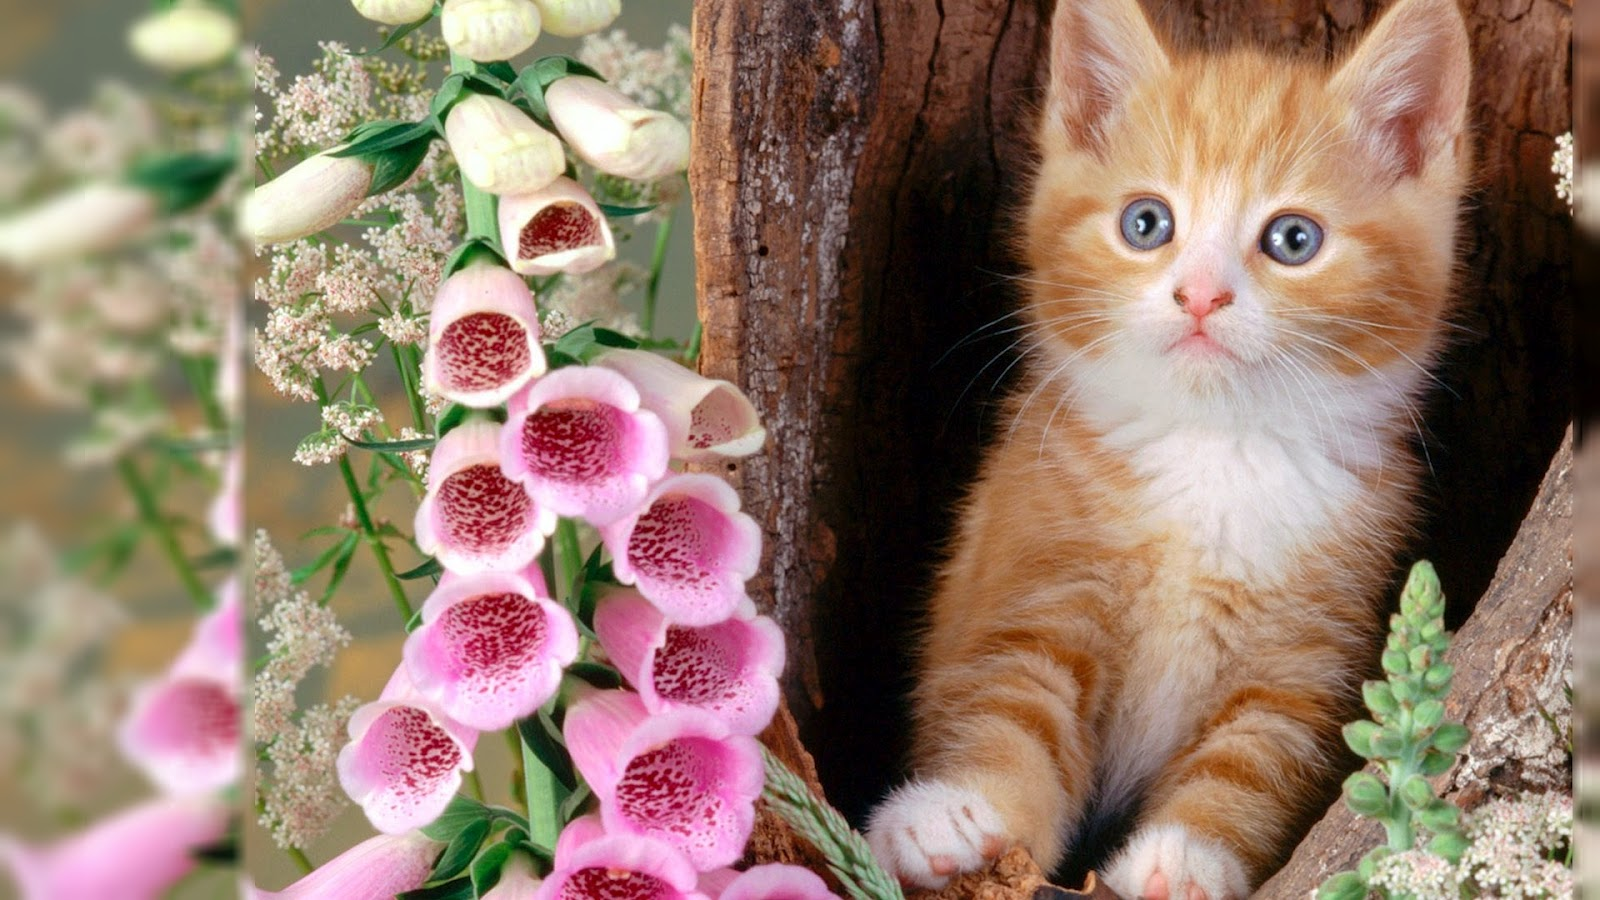 Cat Hd Wallpapers High Quality Background Free Cat Wallpapers The Incredible World Of Photos